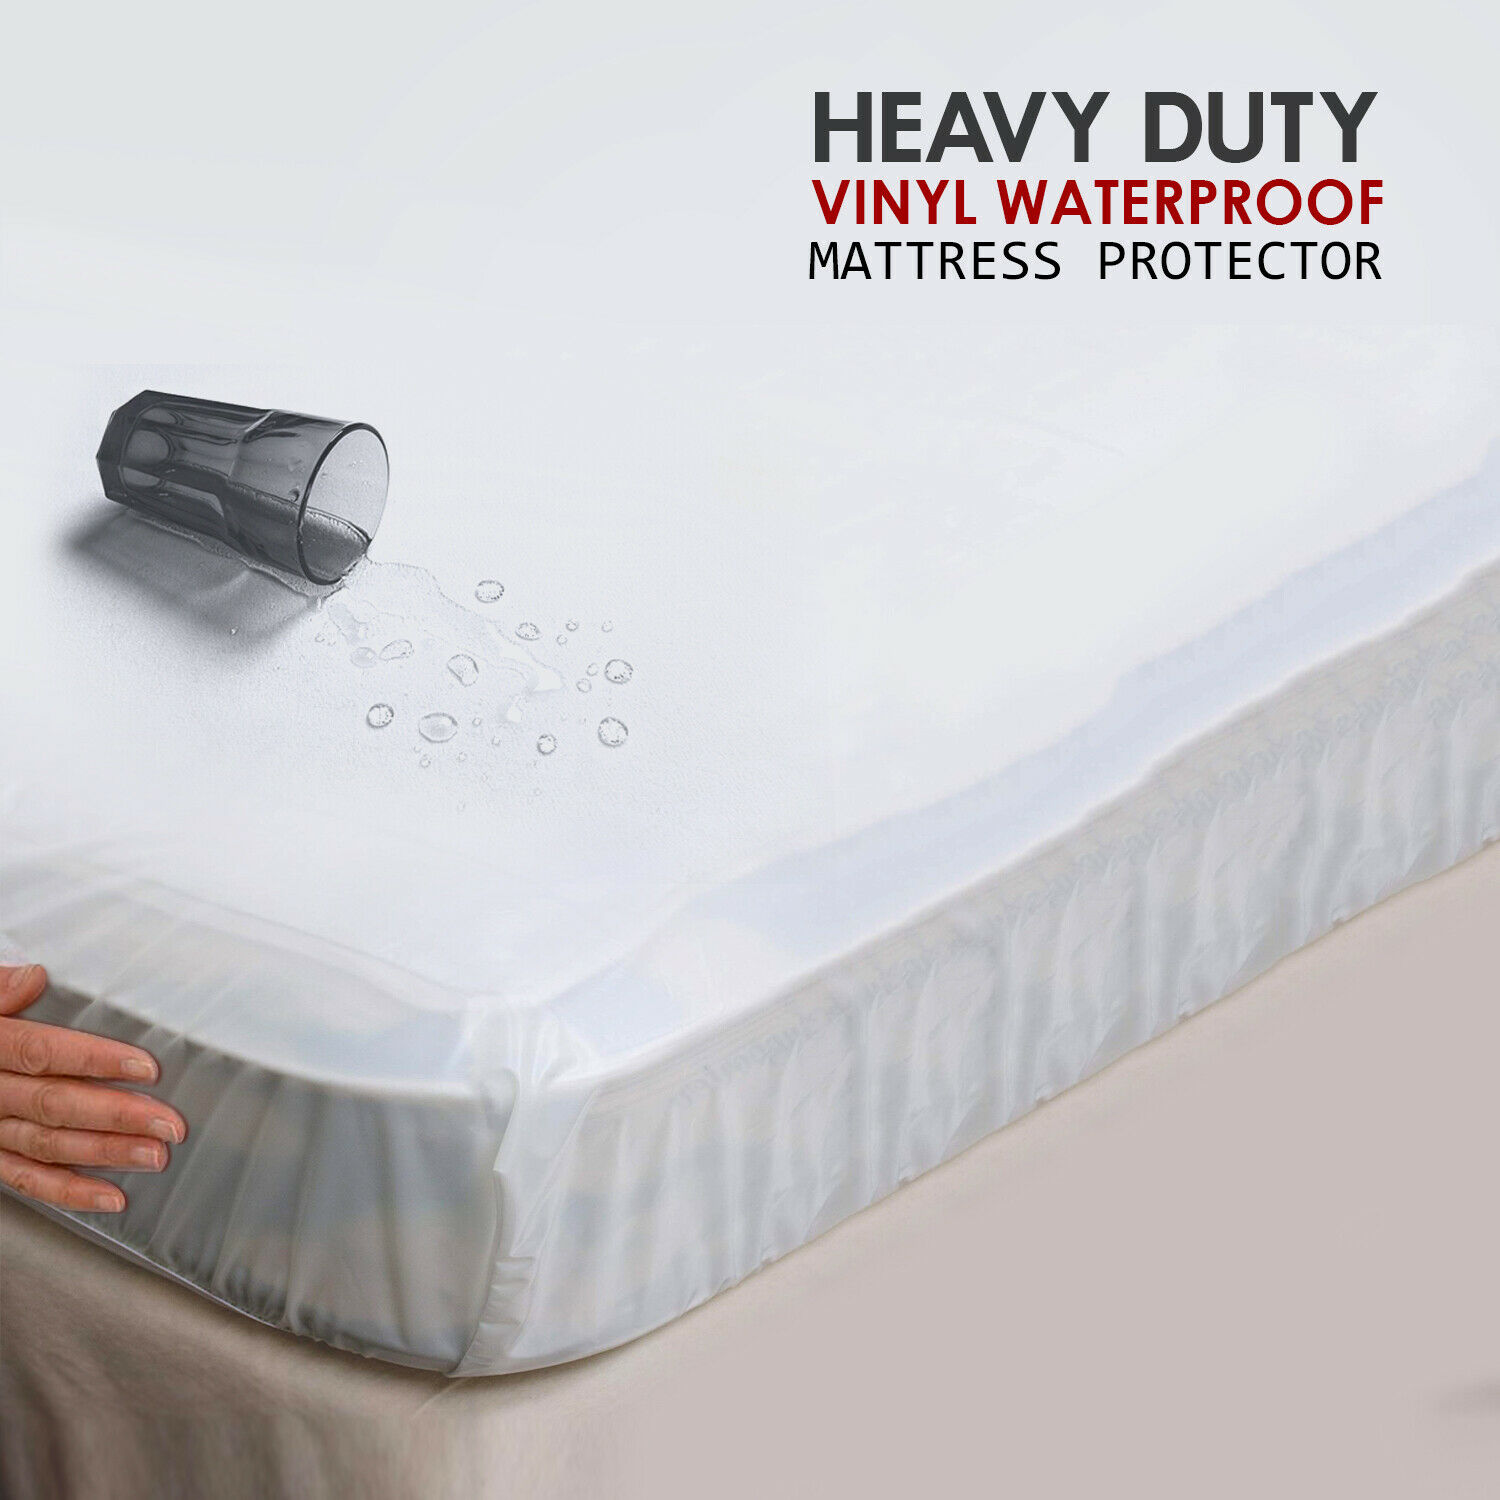 Vinyl Mattress Cover Protector 100 Waterproof Heavy Duty For All Bed Sizes Ebay